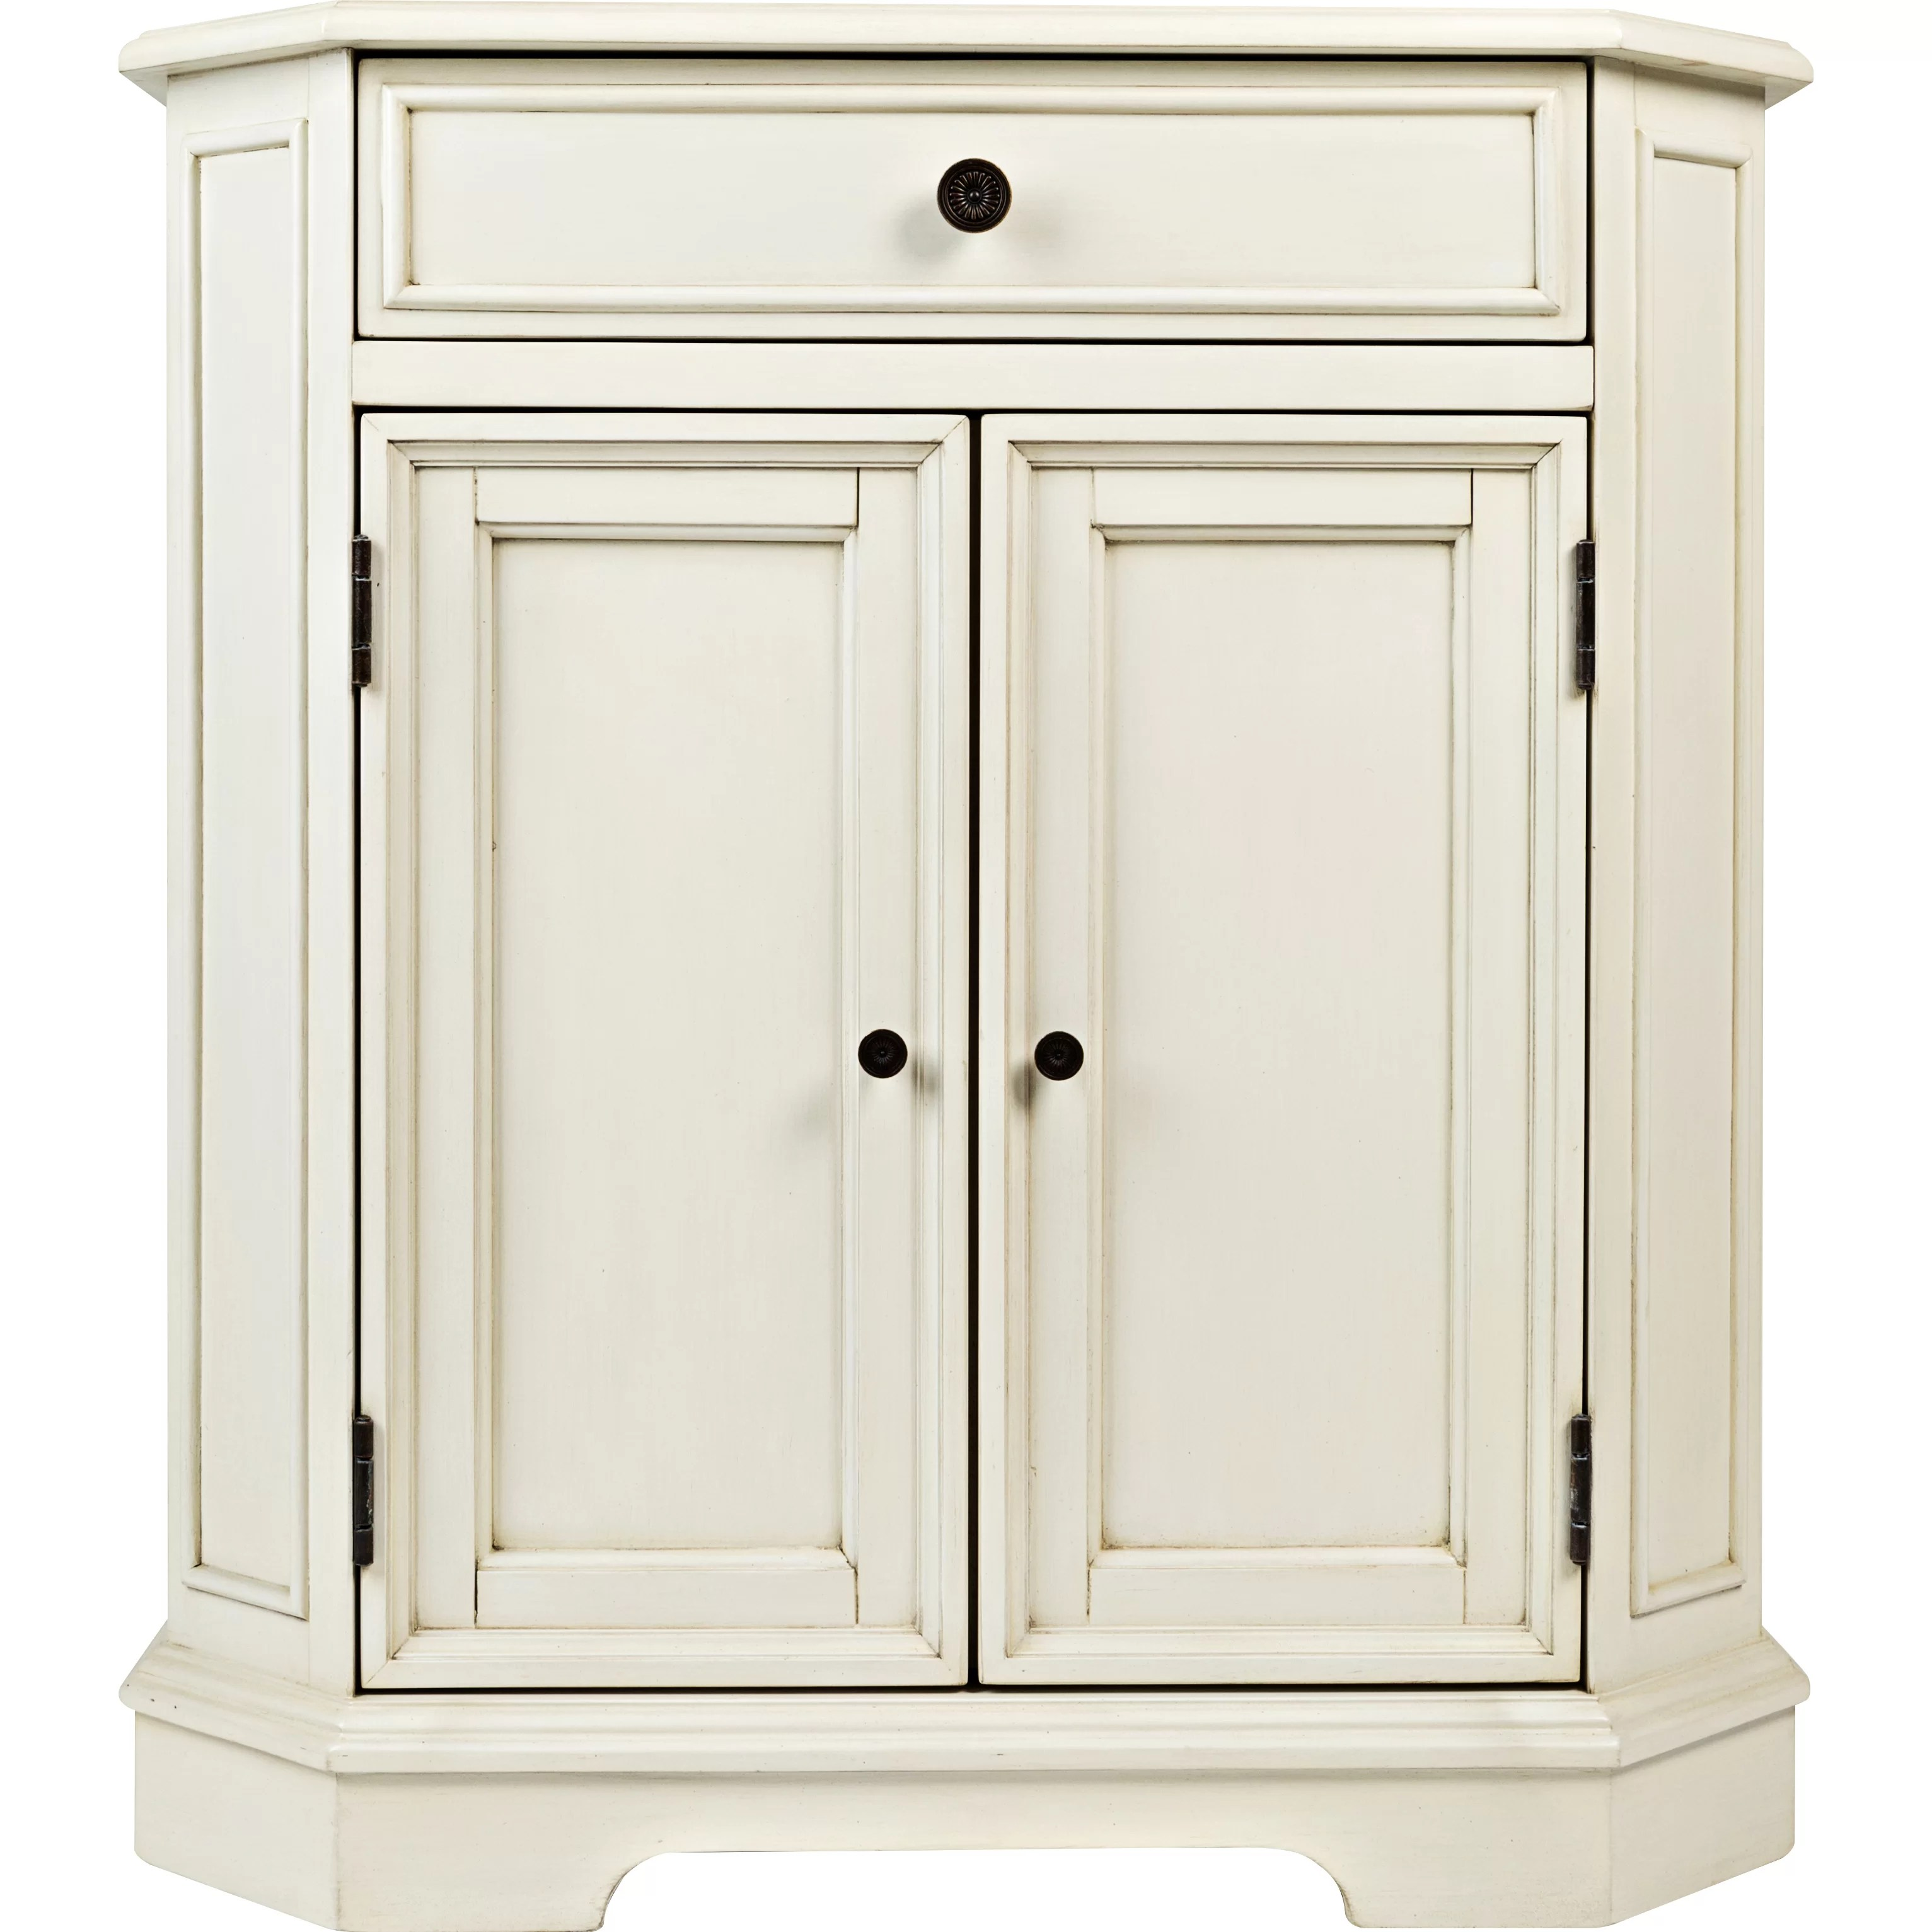 Beachcrest Home Cuyler Accent Cabinet  Reviews  Wayfairca